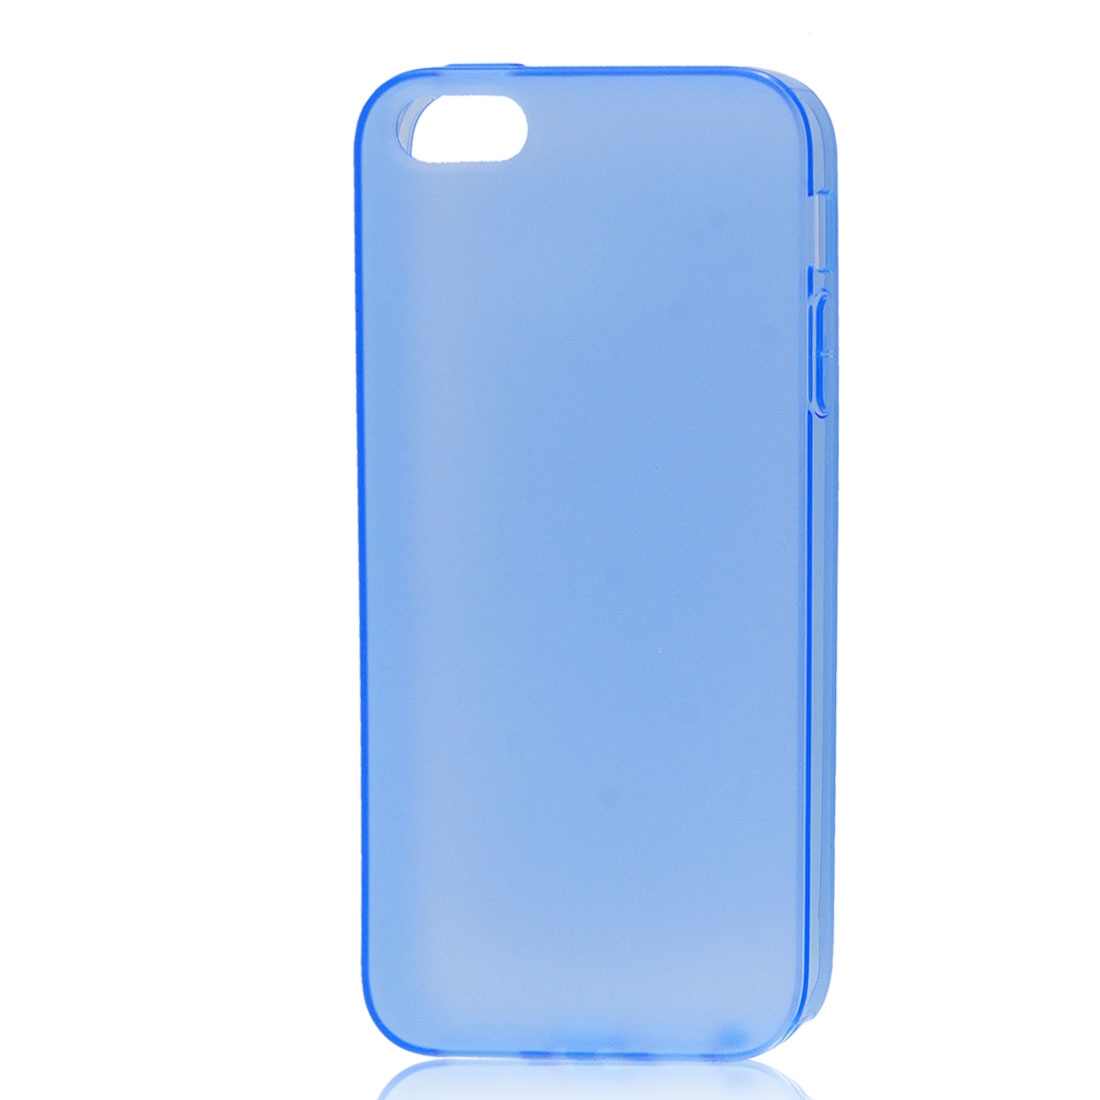 Sky Blue Soft Plastic Matte Protective Case Cover Skin for Apple iPhone 5 5G